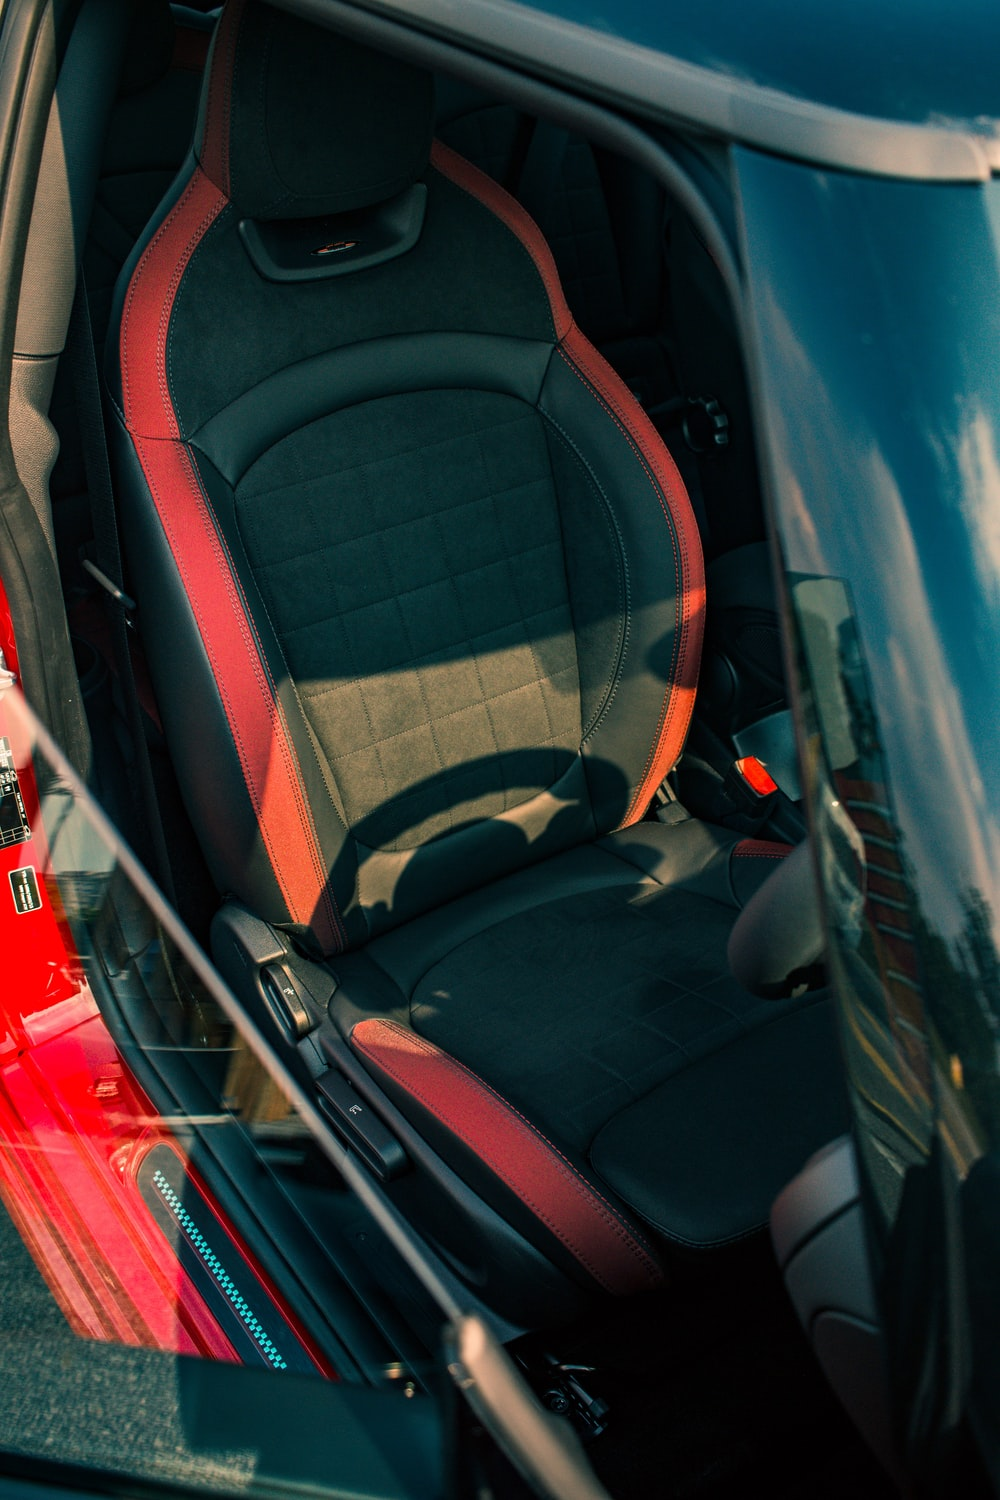 vacant black and red vehicle seat